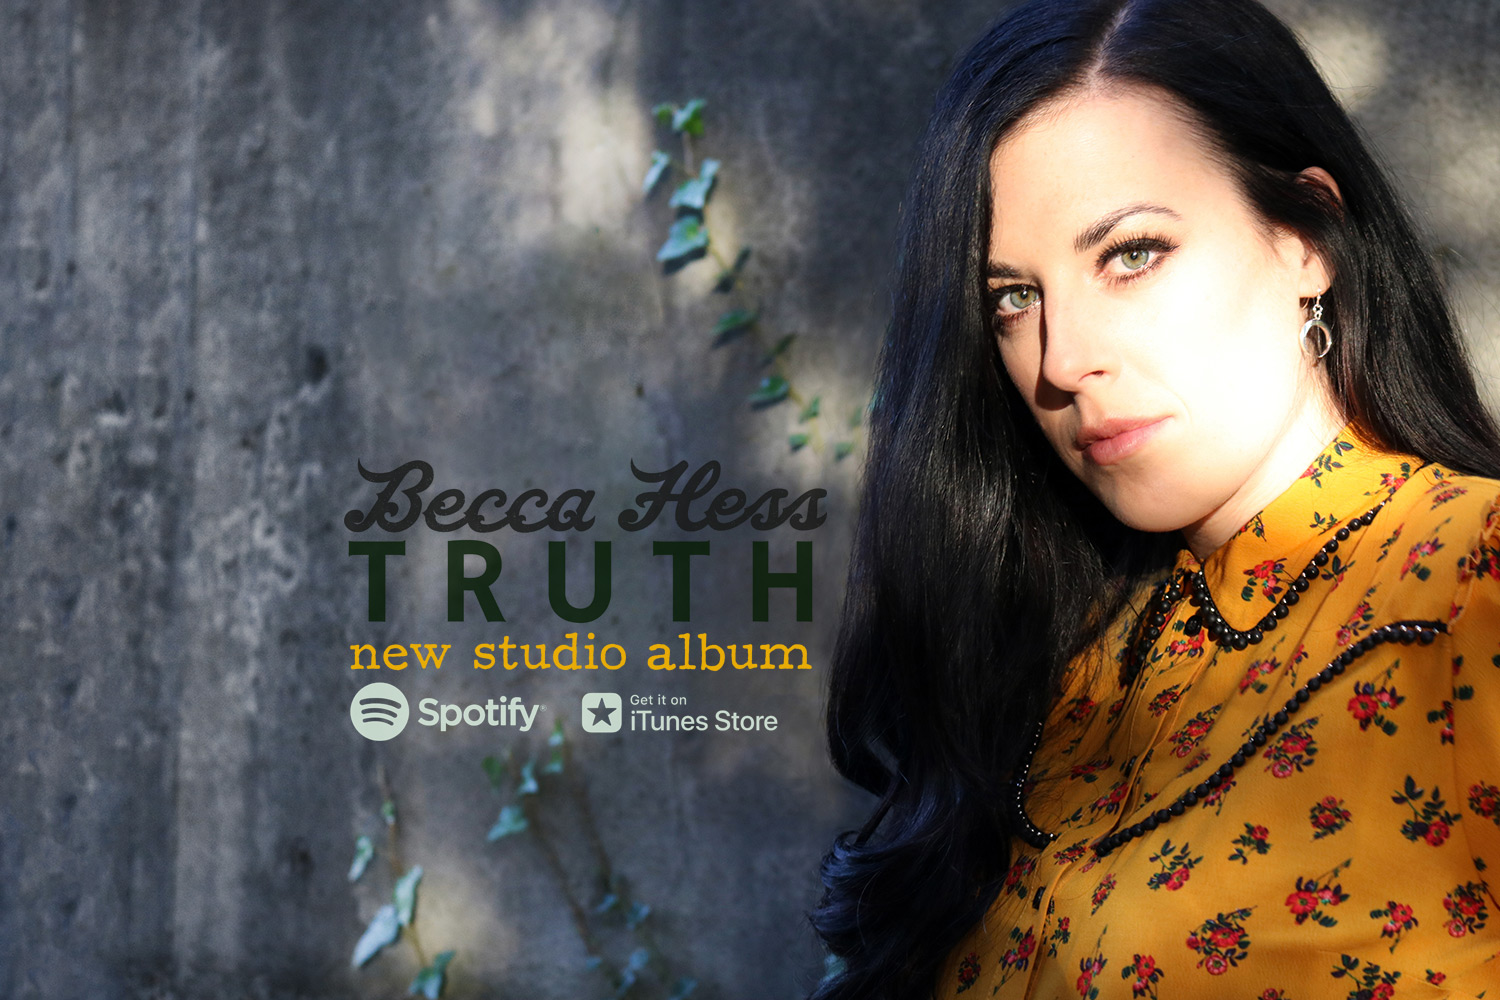 becca-hess-truth-homepage